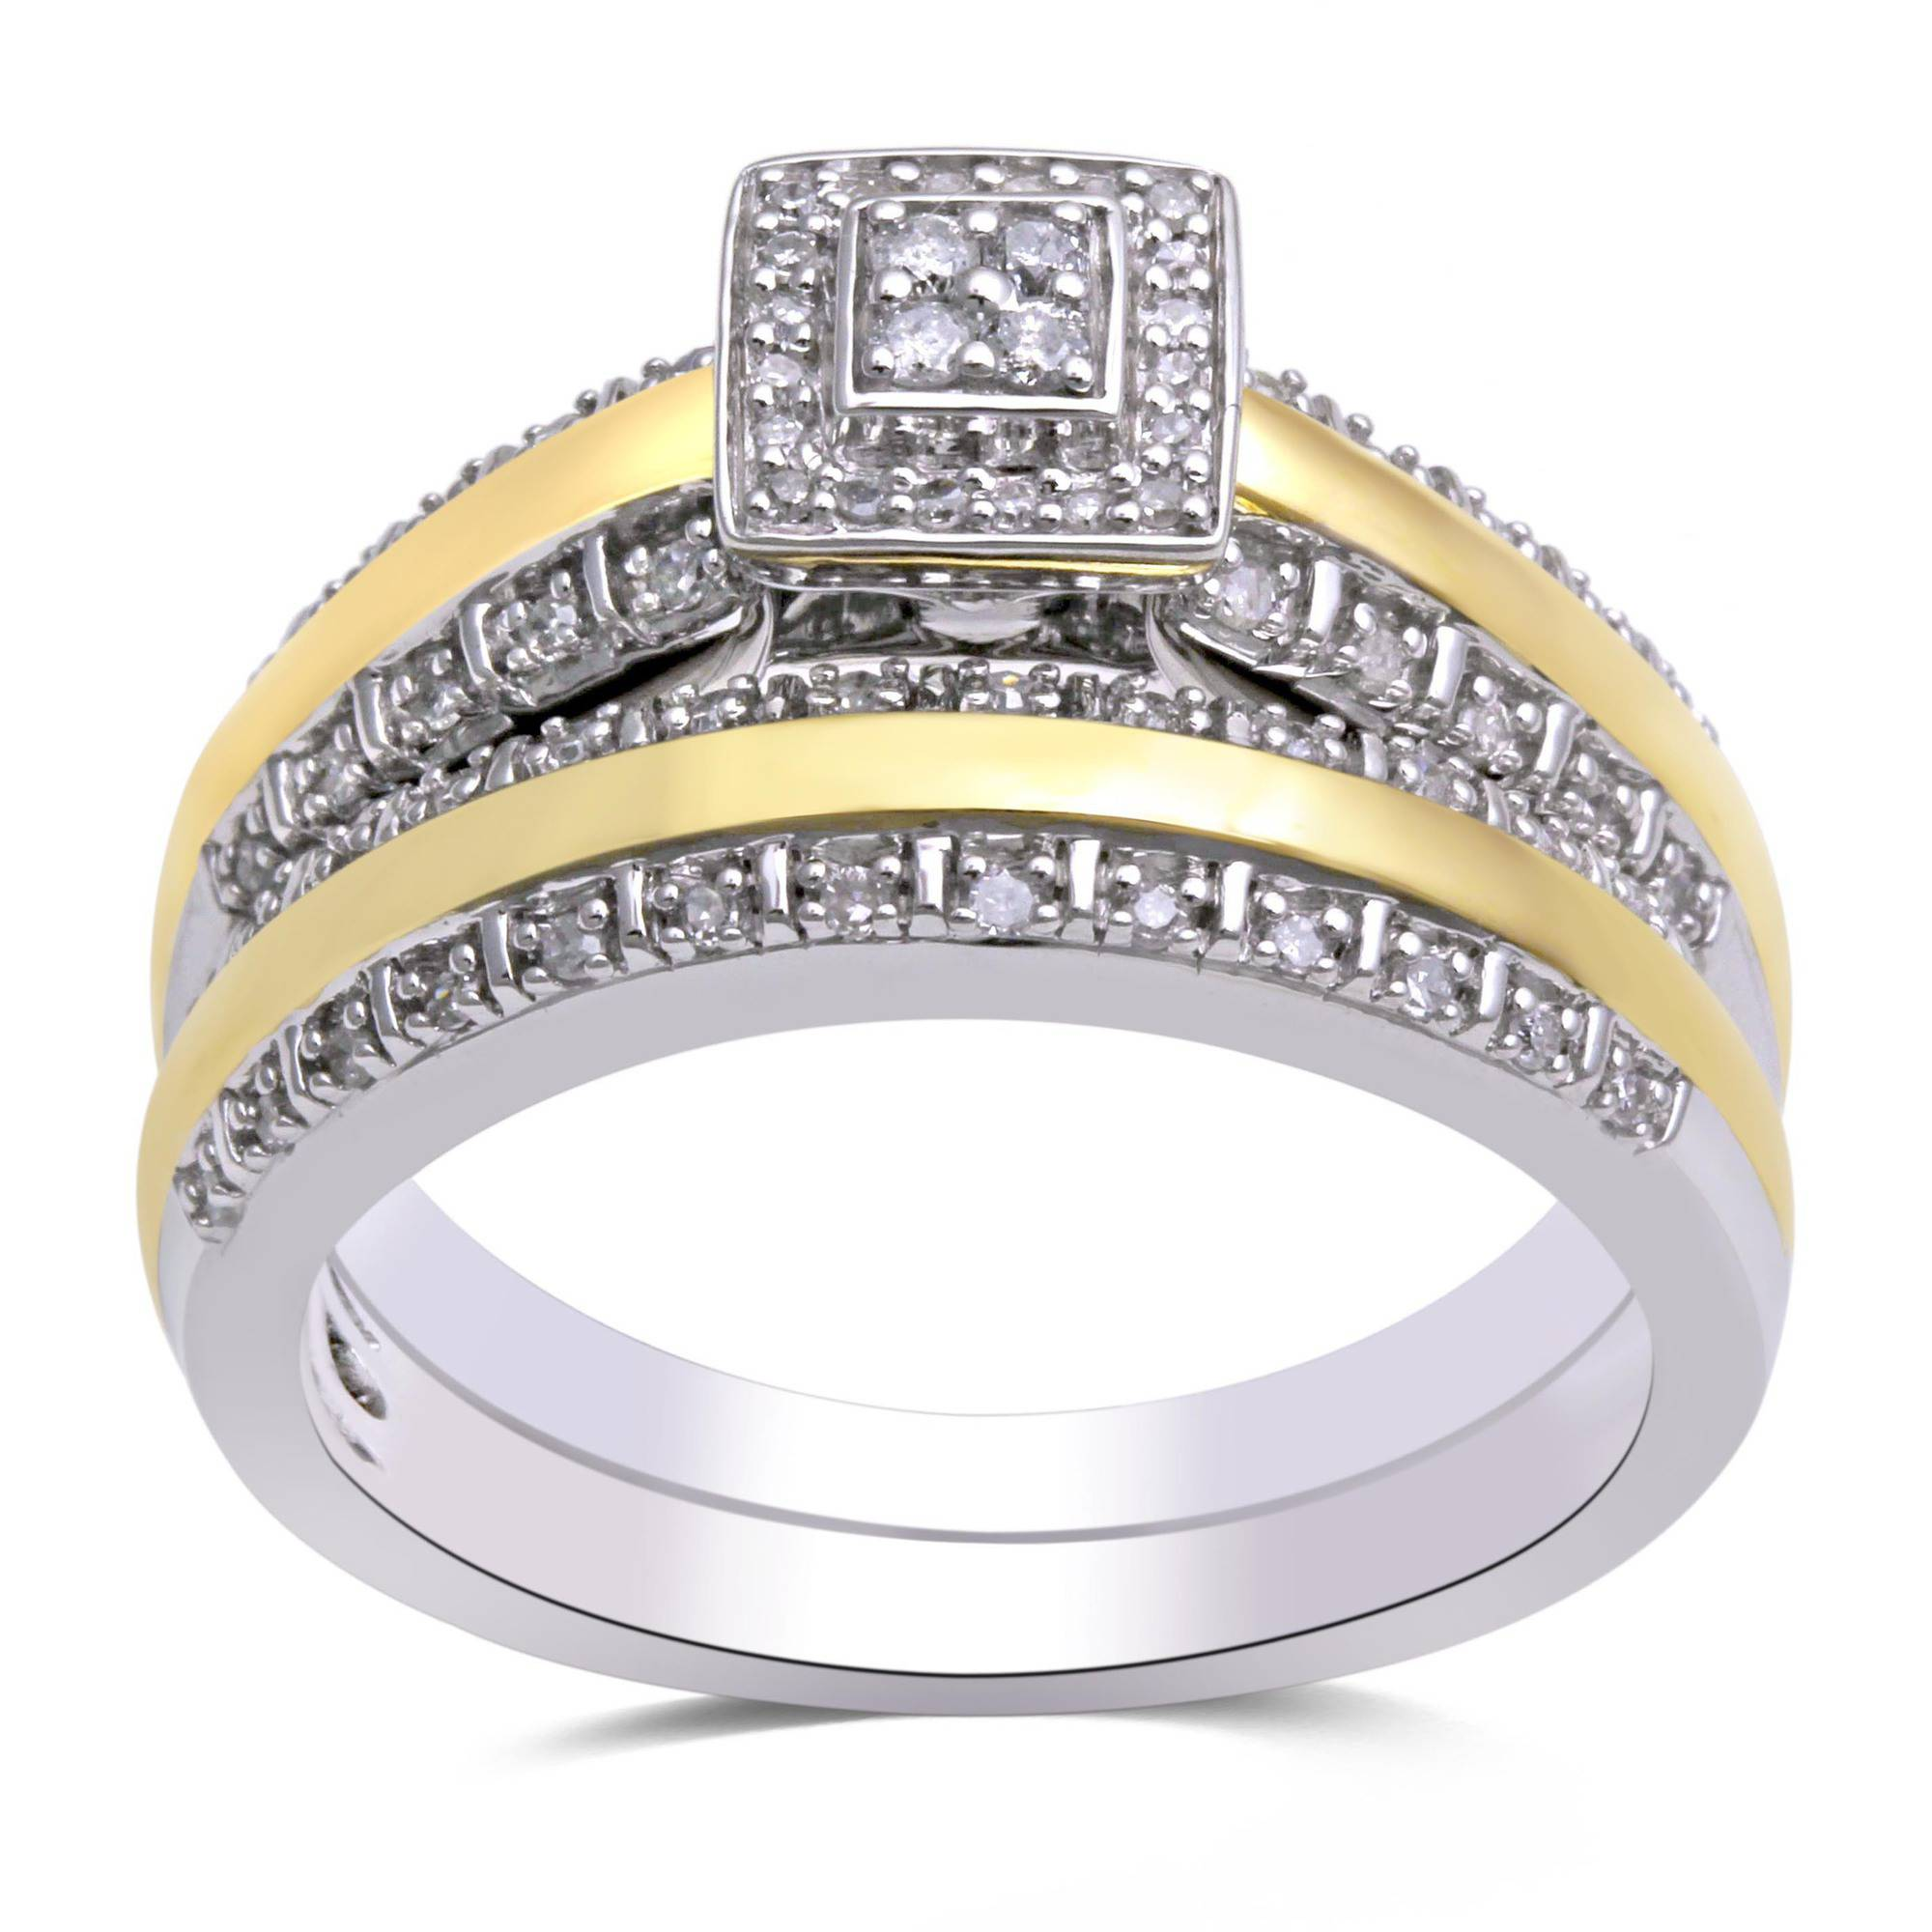 Inspirational Wedding Ring Sets for Him and Her Walmart